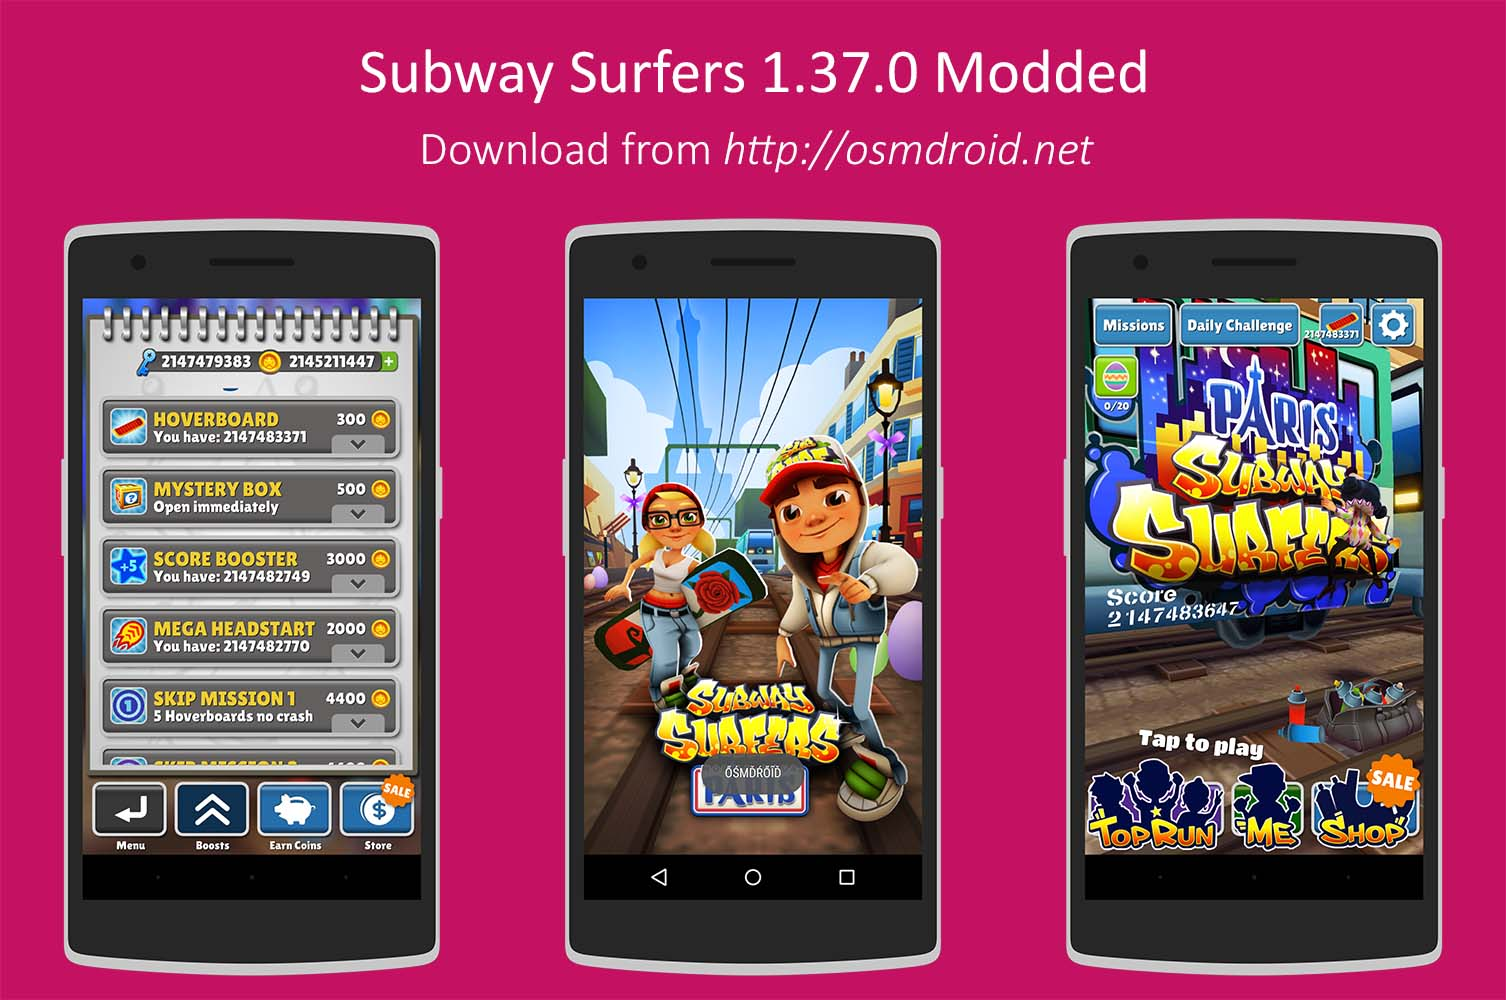 subway surfers 1.37.0